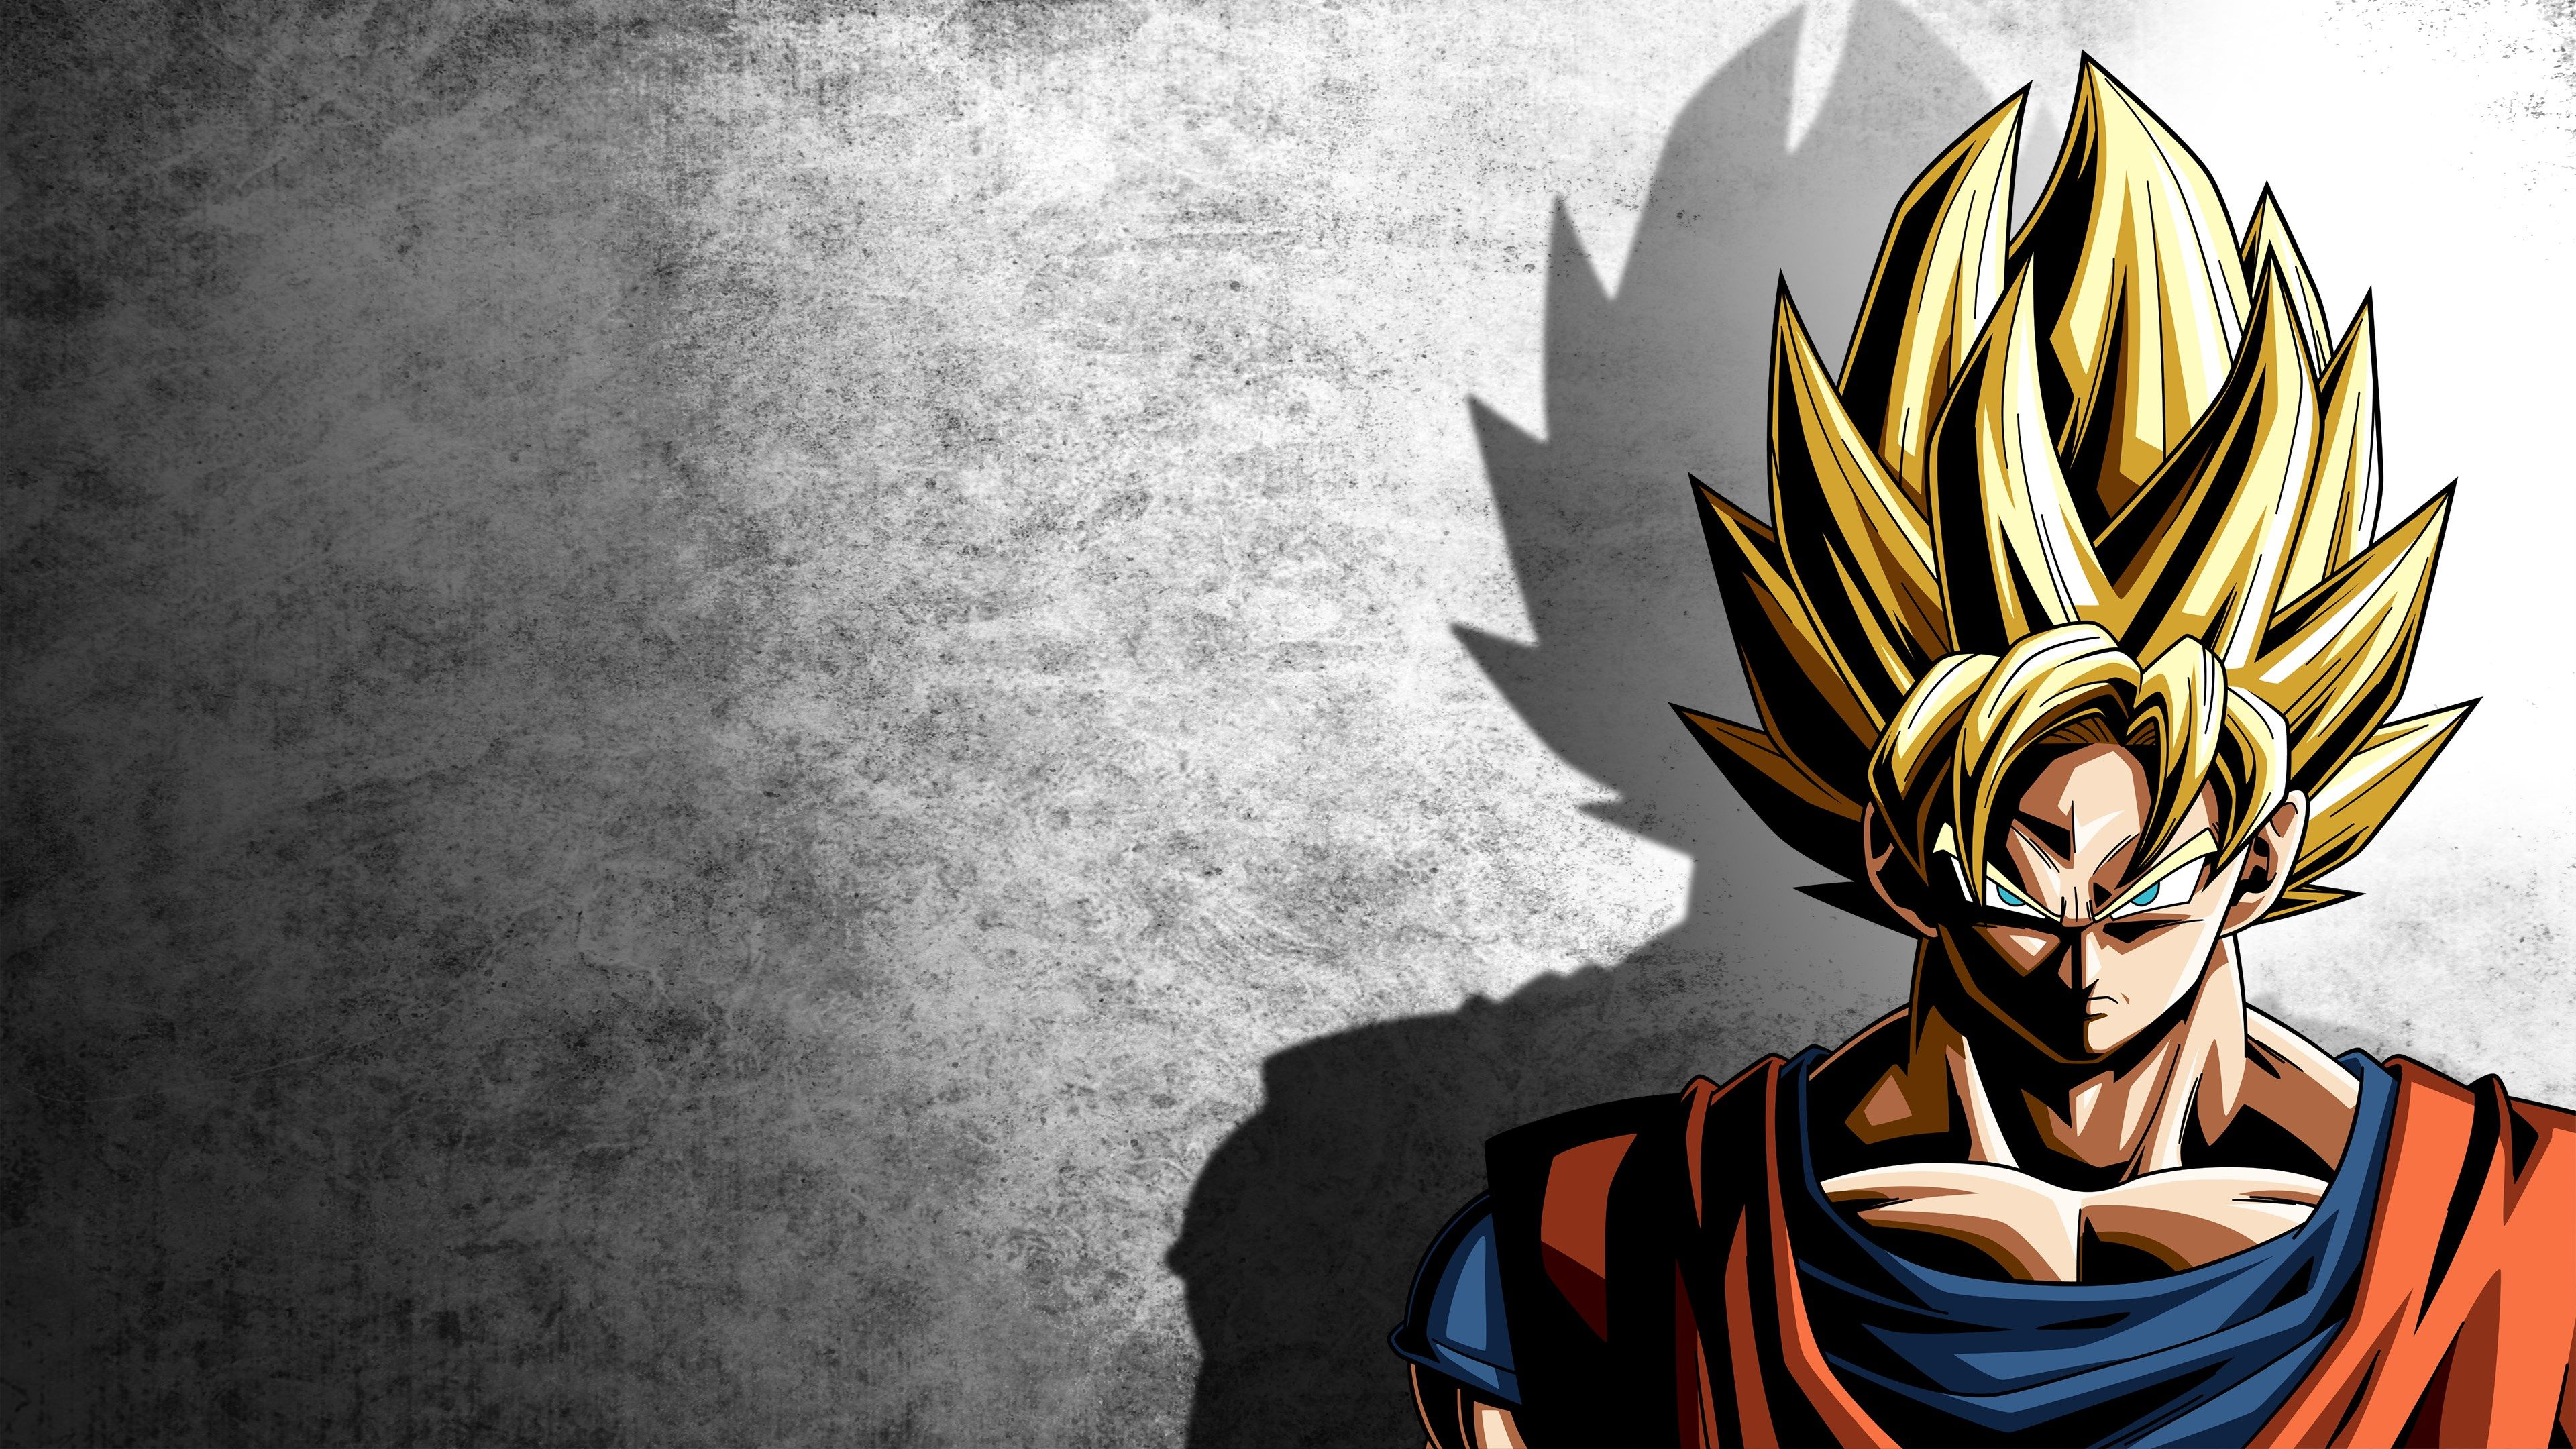 Dbz 4k Wallpapers Top Free Dbz 4k Backgrounds